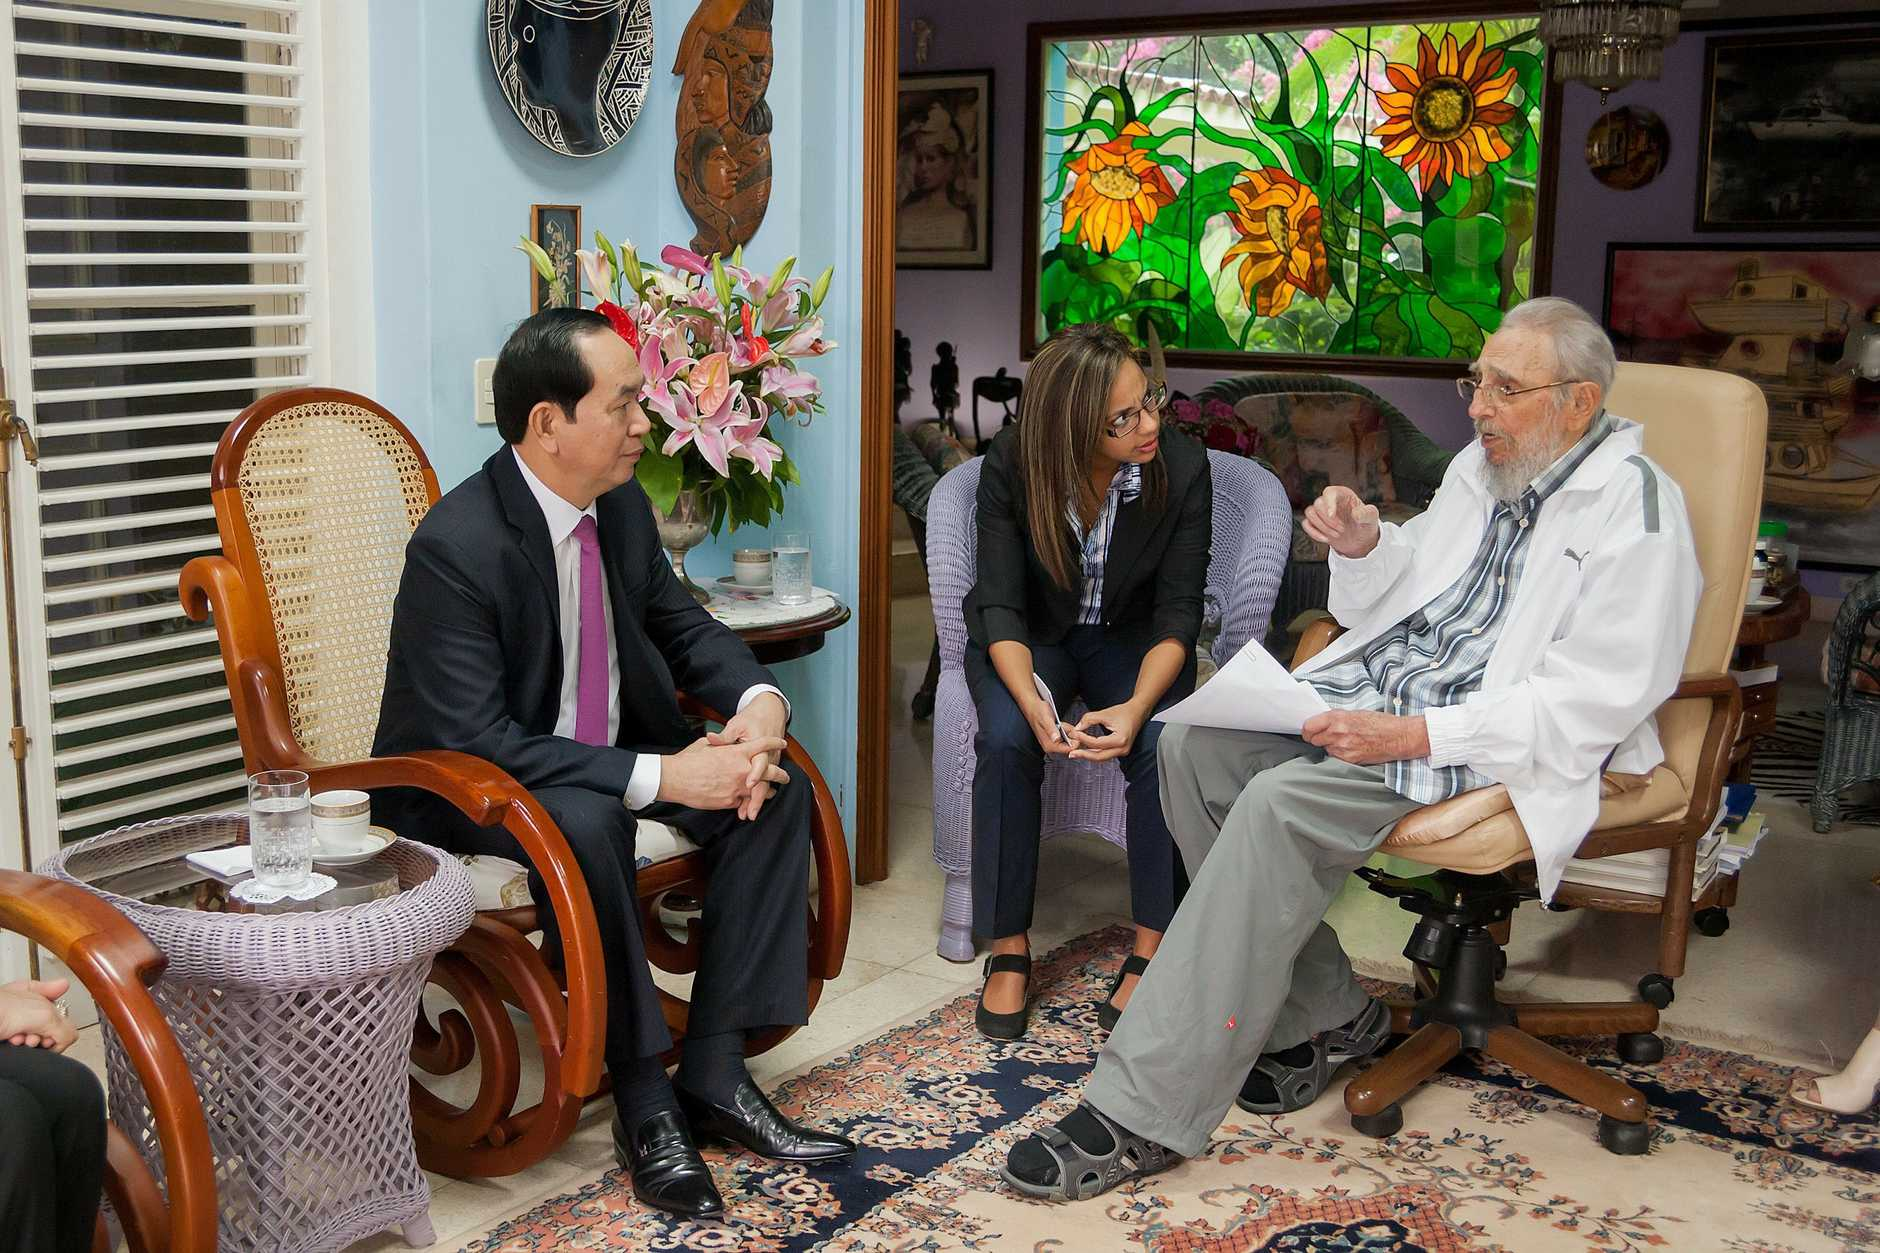 A handout photograph provided by Cubadebate on 16 November 2016 shows former Cuban President Fidel Castro (R) meeting with the President of Vietnam Tran Dai Quang (L) in Havana, Cuba, 15 November 2016. Cuba and Vietnam established diplomatic relations in 1960, a year after the triumph of a revolution led by Castro, and have since enjoyed friendly political and economic ties, including cooperation